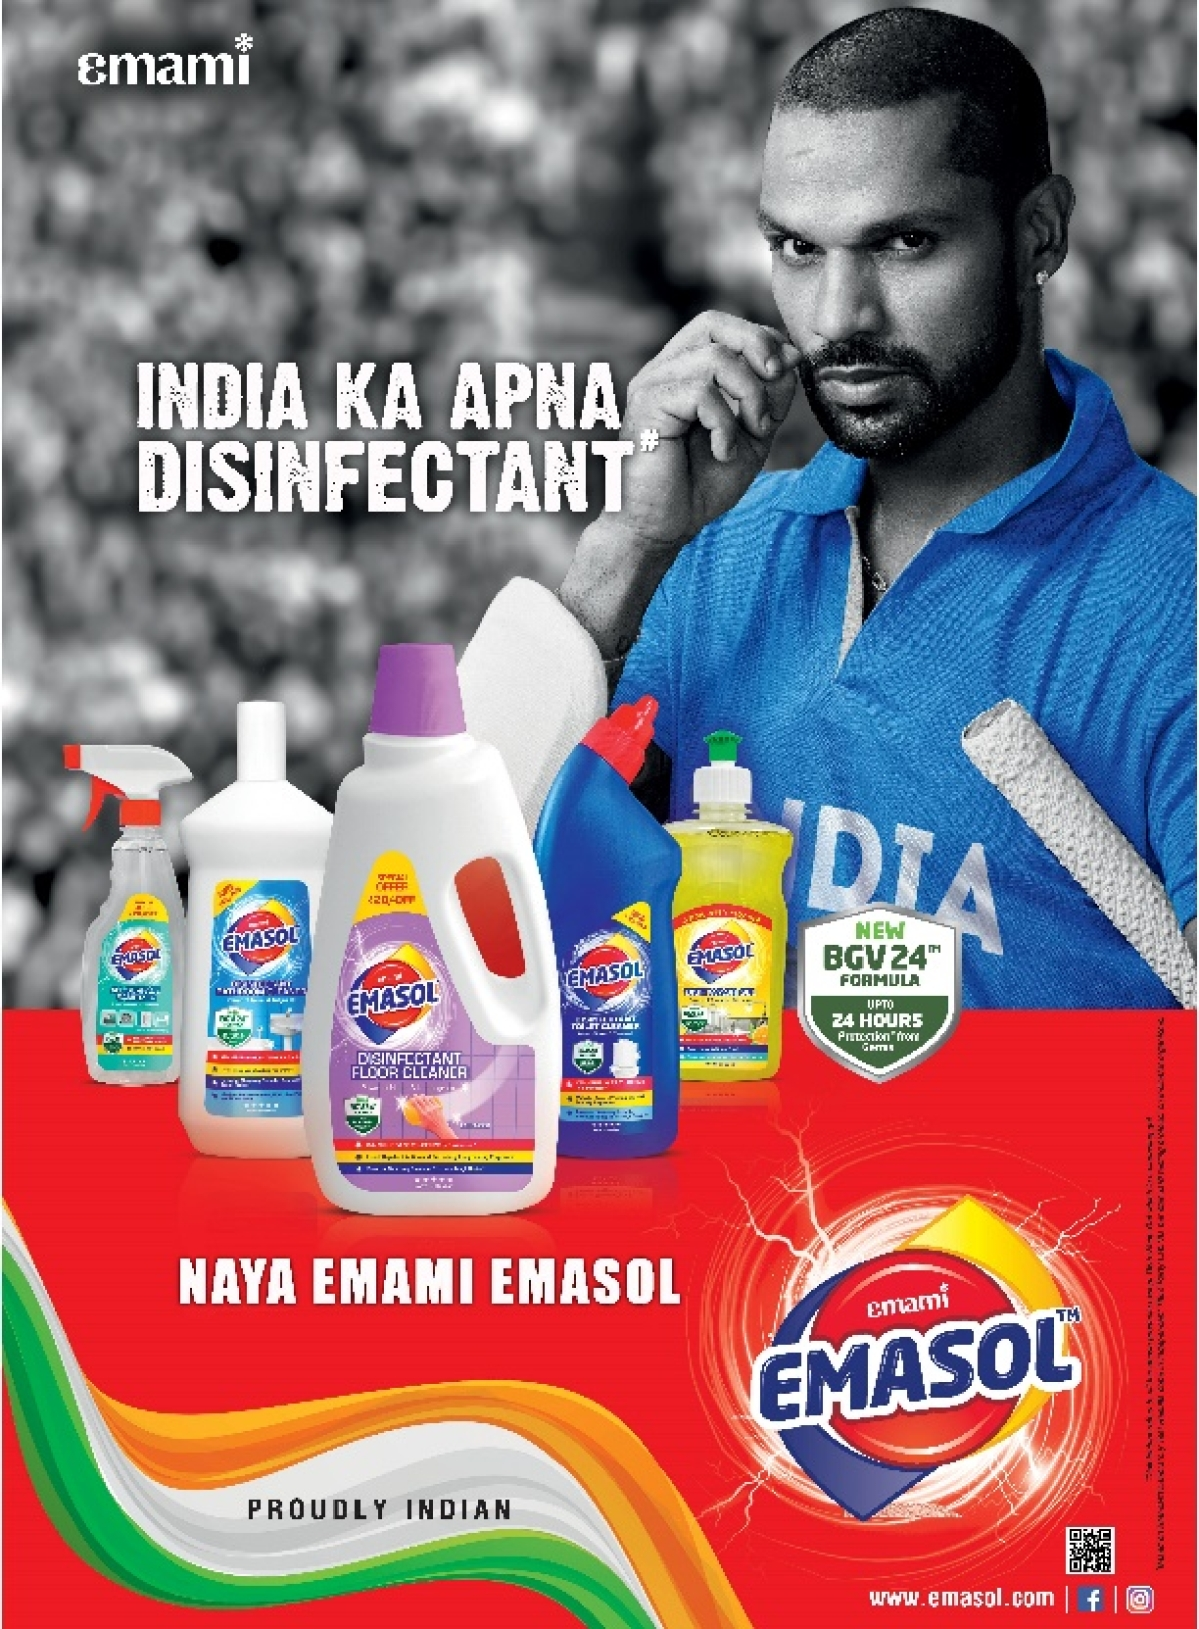 Emami forays into Home Hygiene Space with 'EMASOL'